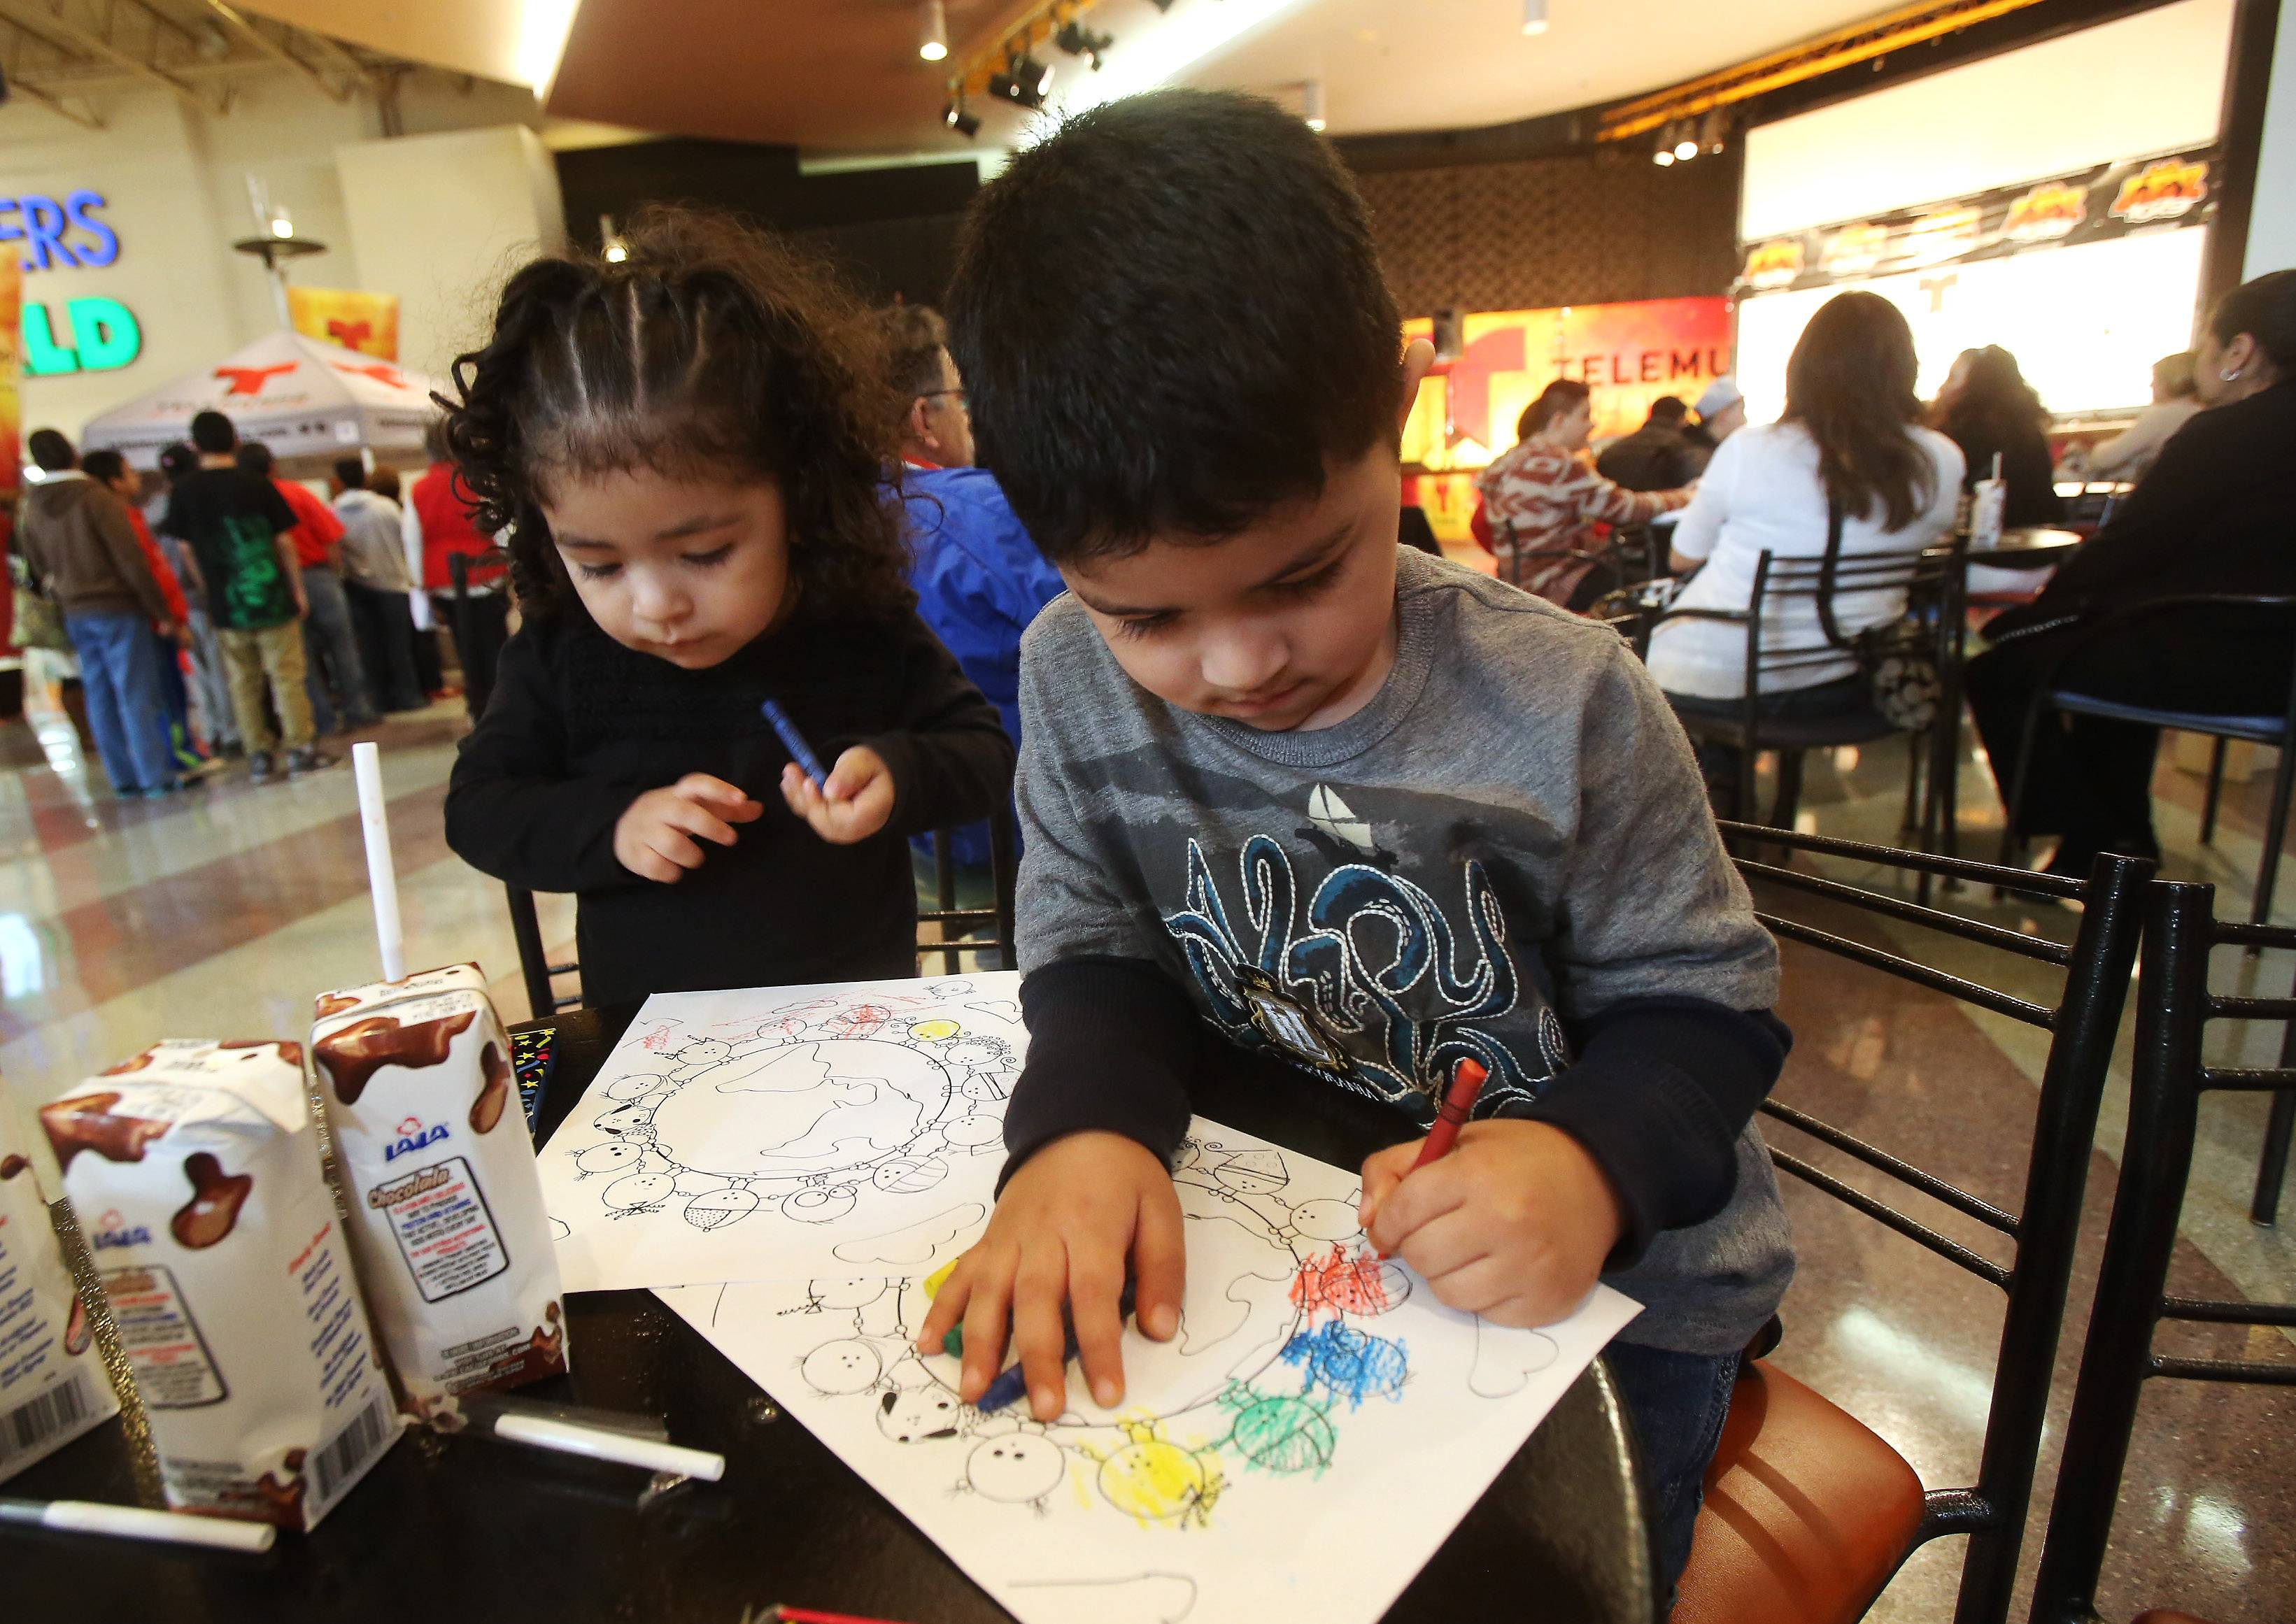 Alexa Tello, 3, and her brother, Bryan, 4, of Waukegan color during the first Cinco de Mayo celebration at Gurnee Mills on Sunday. The event include several Latino artists, food samplings, face paintings and giveaways.